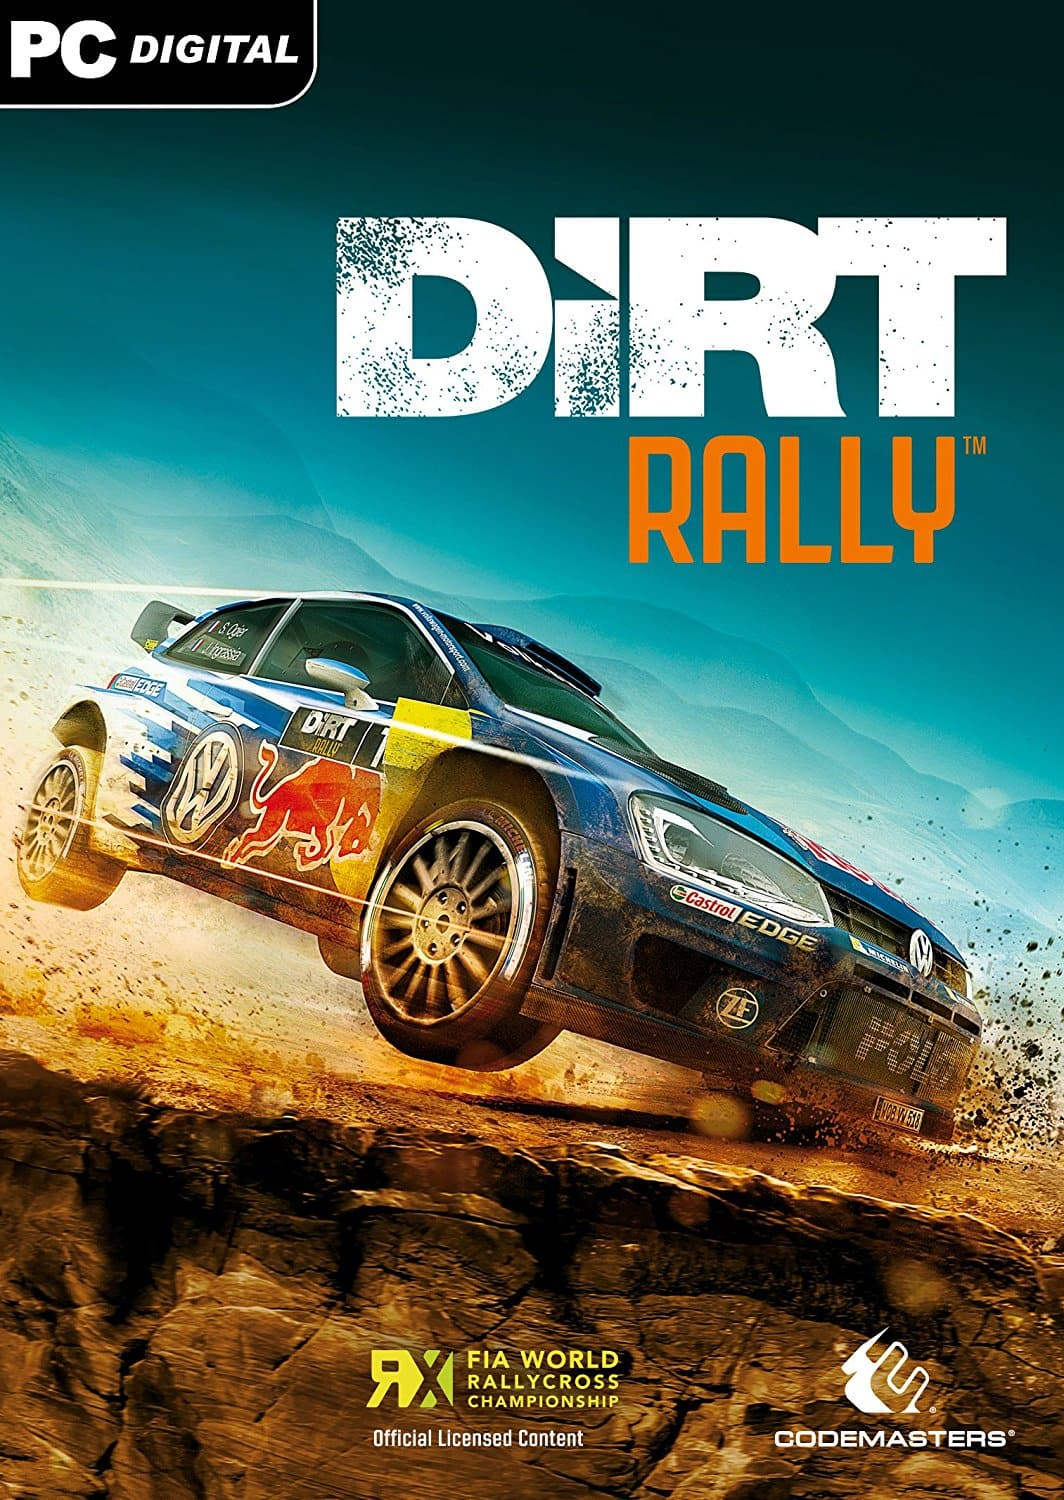 PC game - Amazon: DiRT Rally - V1.0 Full Release (Steam Code) $12